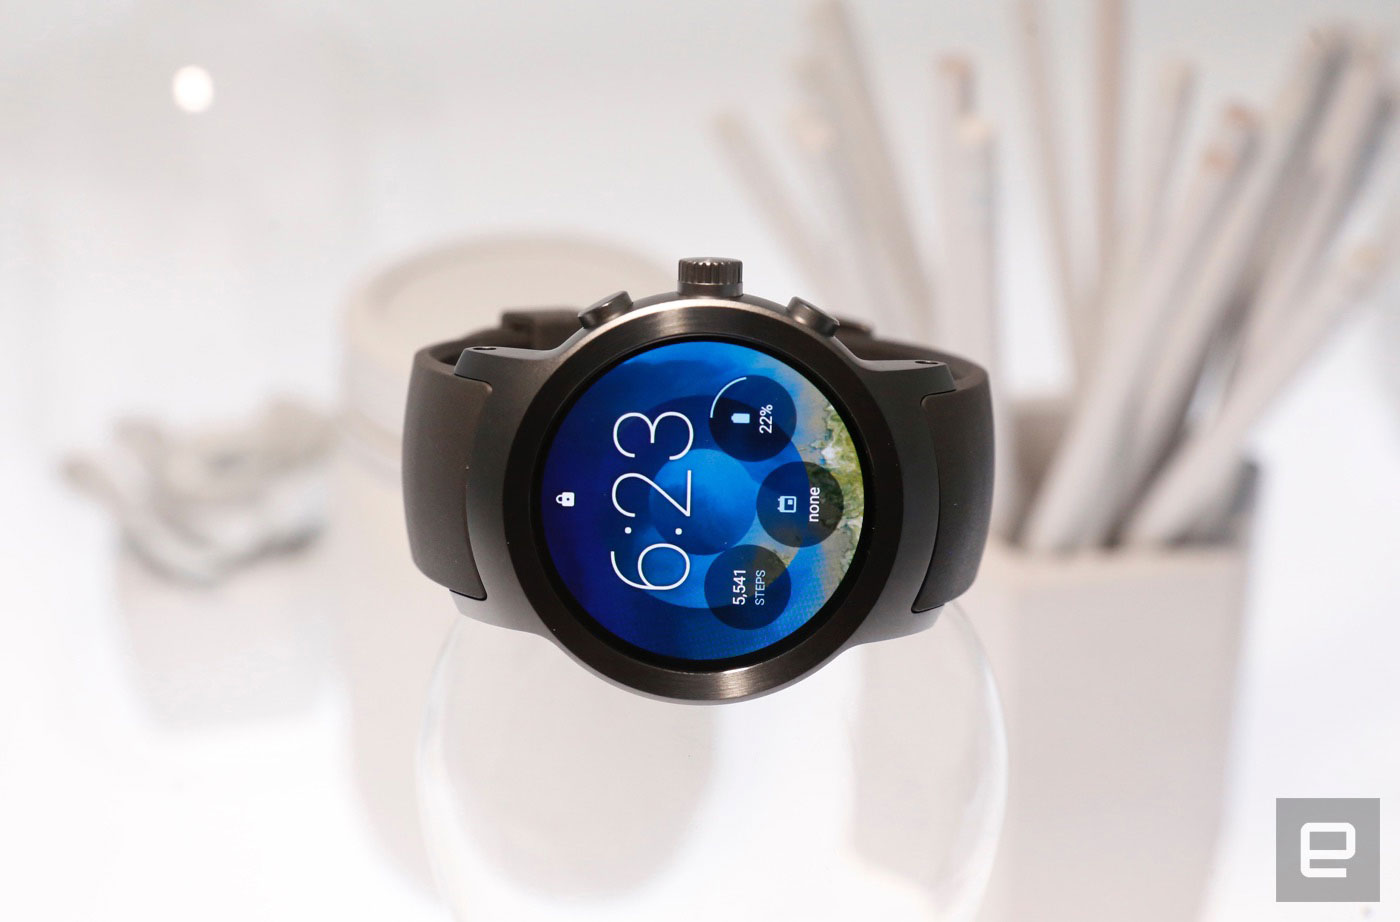 i might not love the watch sportu0027s exterior design but lg has otherwise nailed the basics the display is crisp and decently bright even under harsh